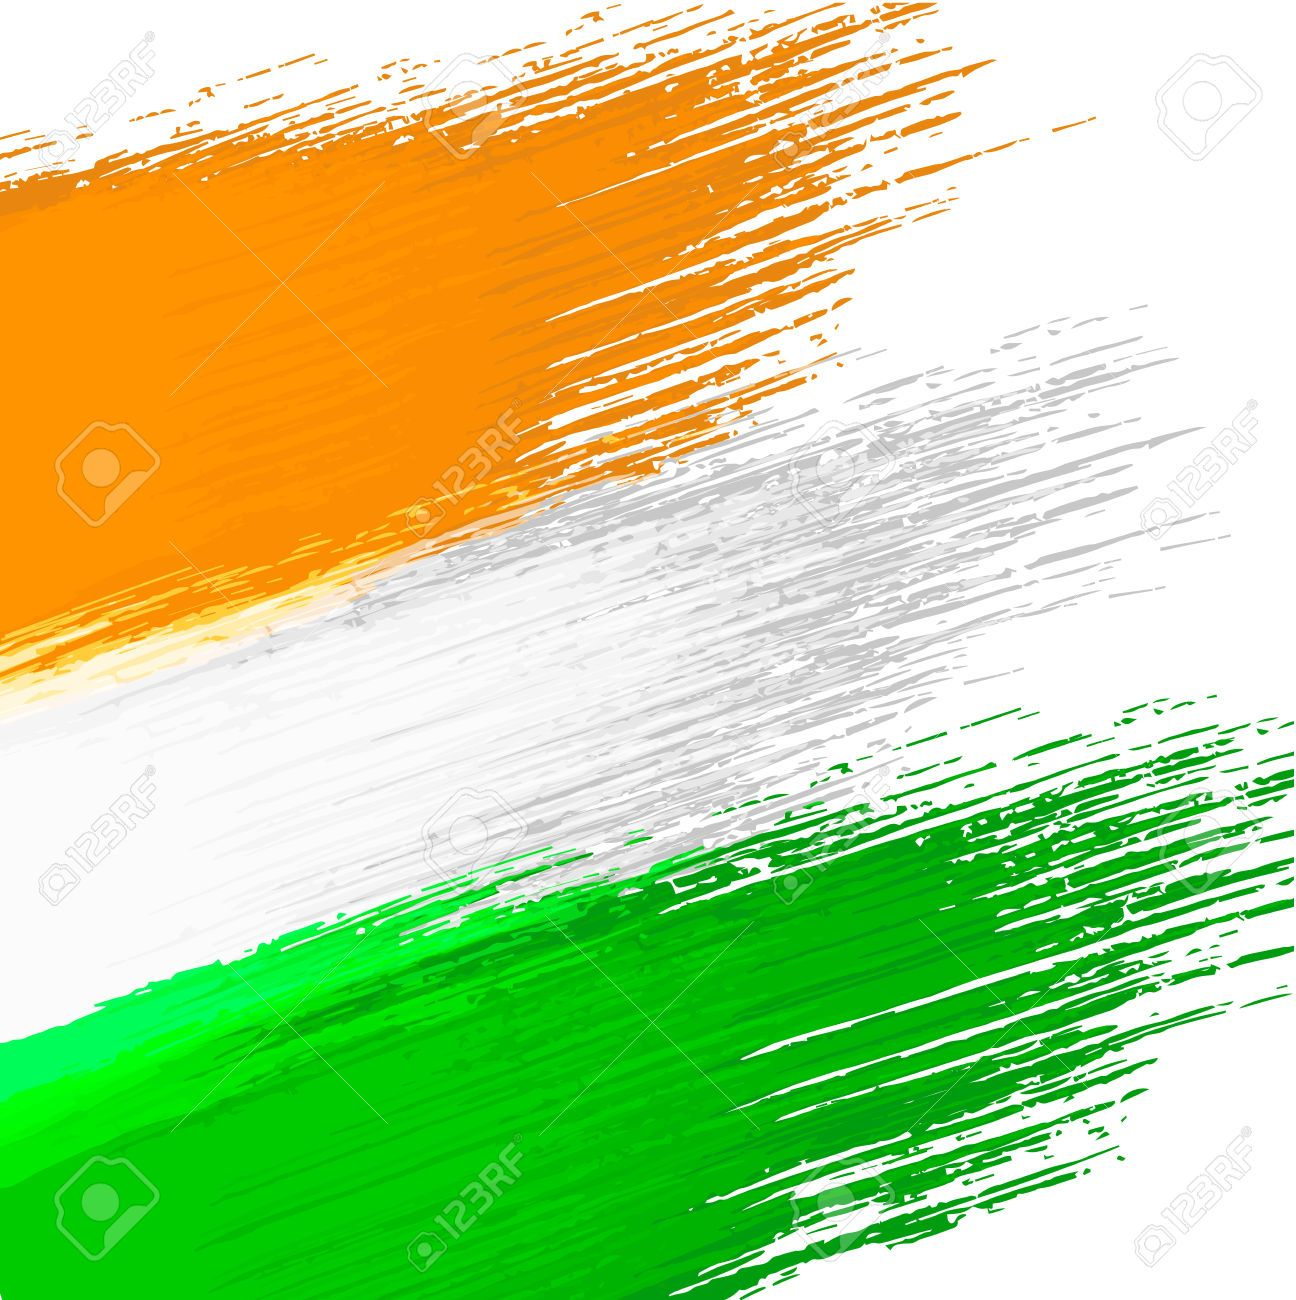 Stock Vector in 2020 Colours of indian flag, Indian flag